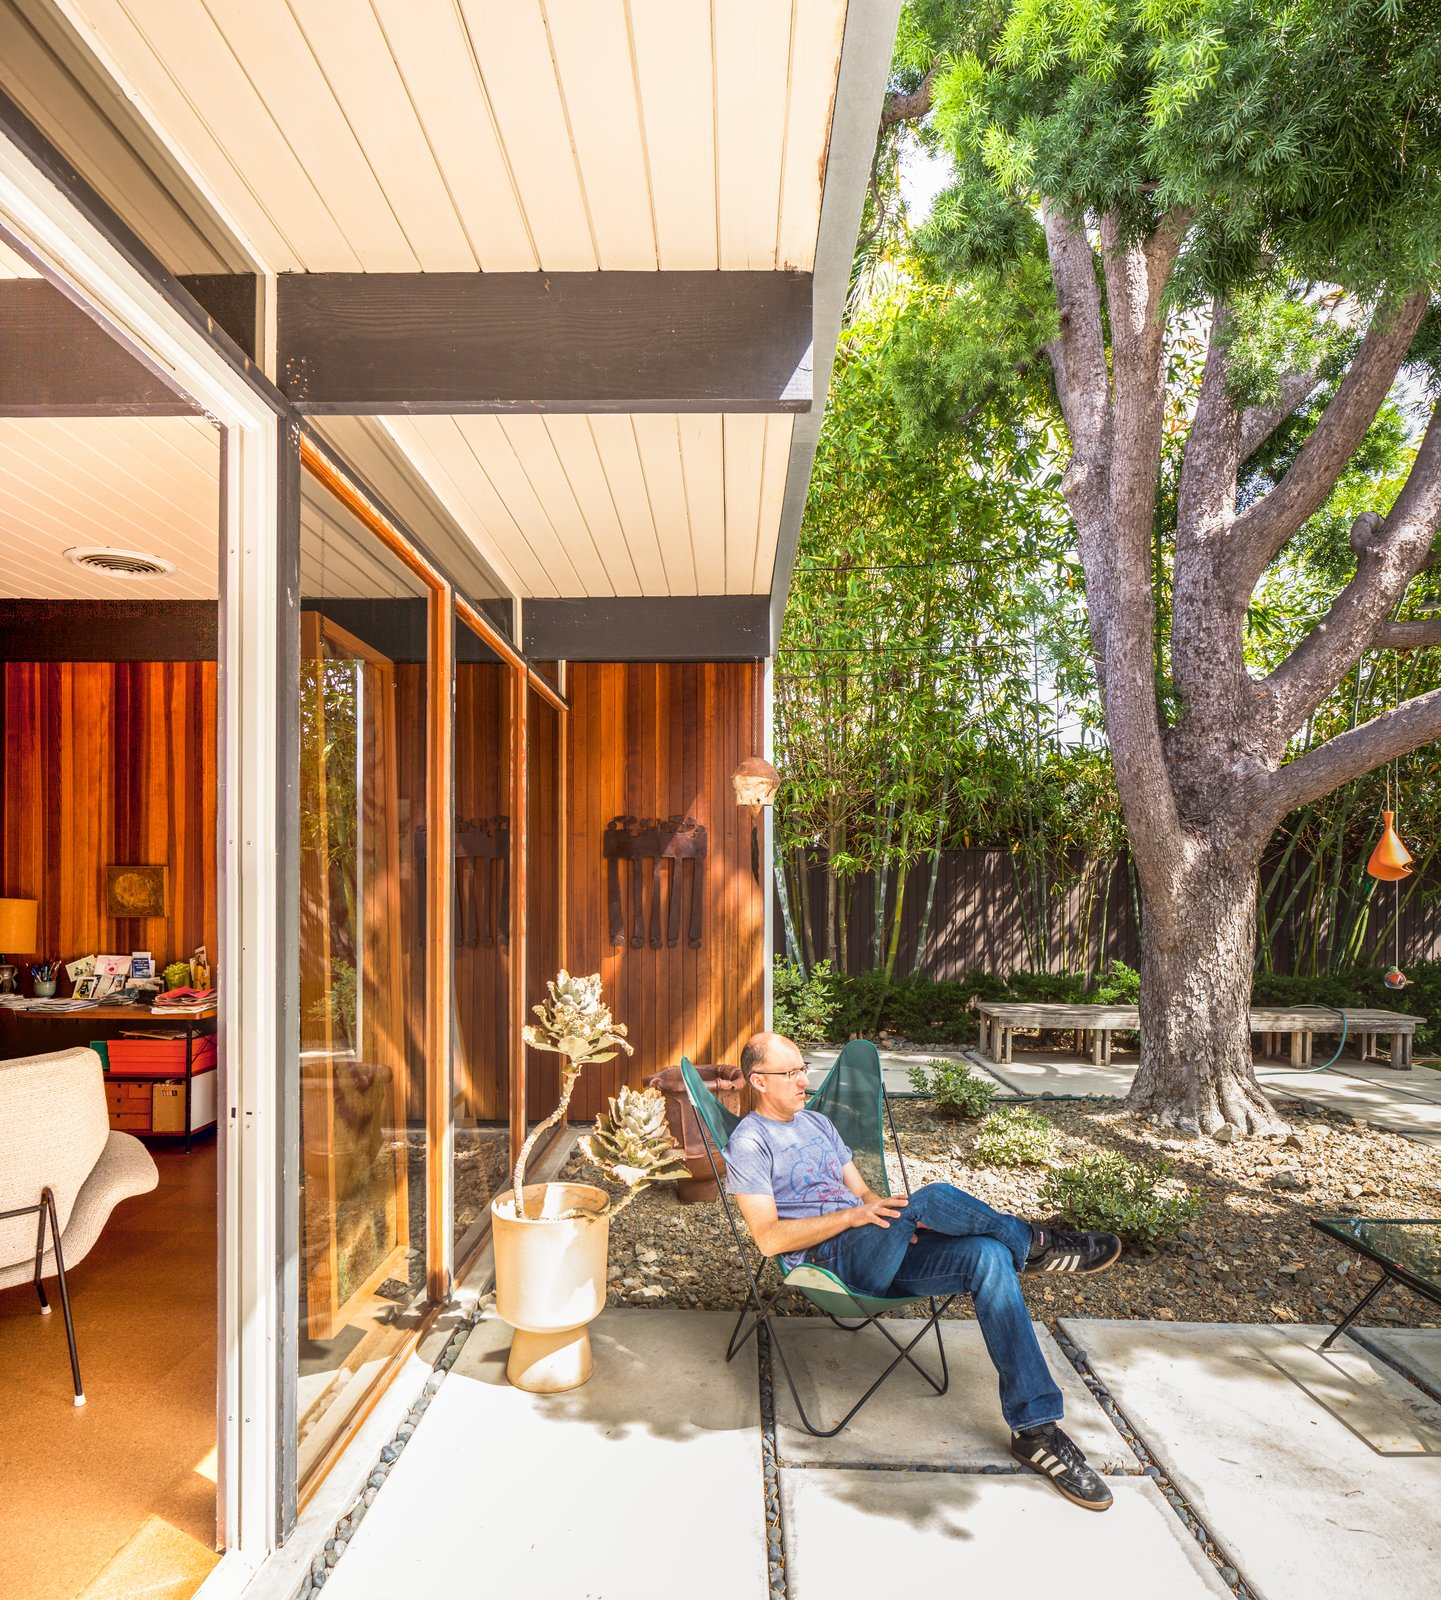 Tagged: Outdoor, Small Patio, Porch, Deck, Trees, Concrete Patio, Porch, Deck, and Pavers Patio, Porch, Deck.  Photo 6 of 10 in A Stunningly Restored Midcentury by Case Study Architect Craig Ellwood Asks $800K in San Diego